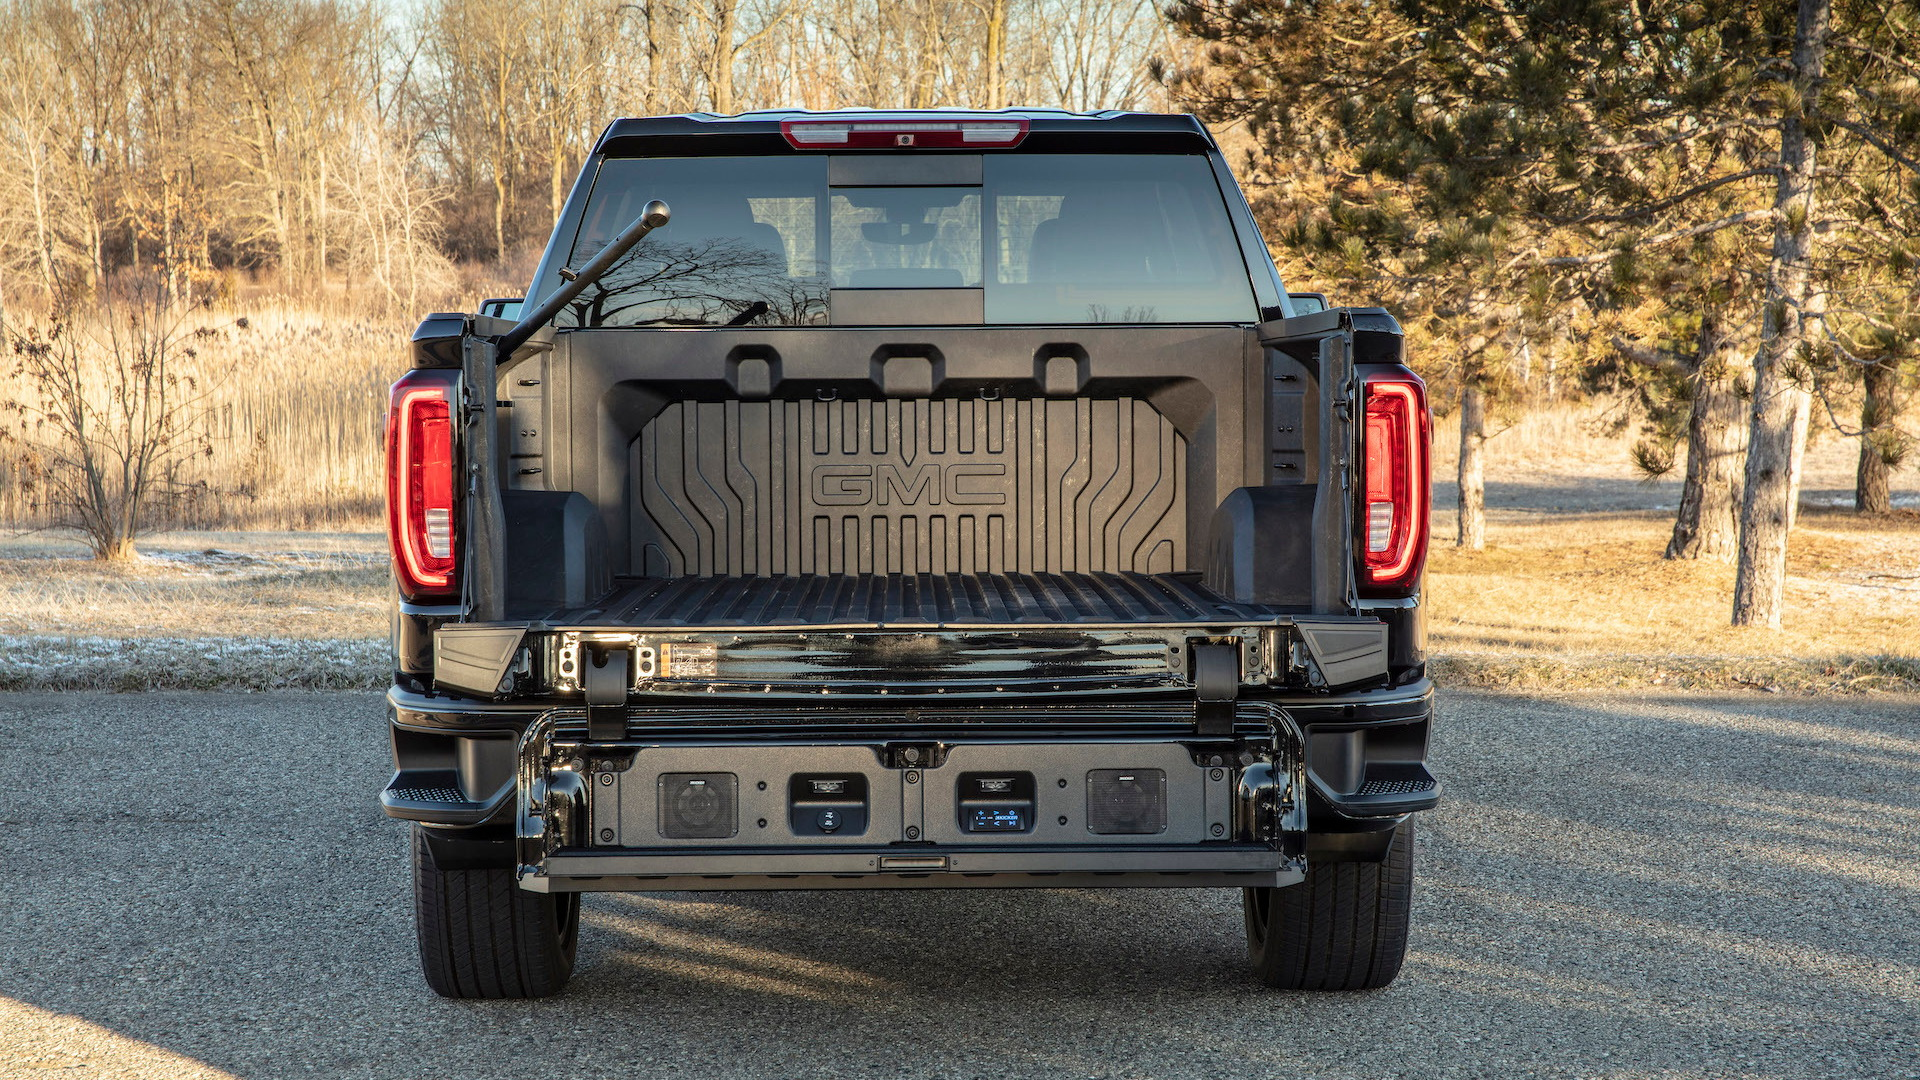 2019 GMC Sierra 1500 CarbonPro Edition